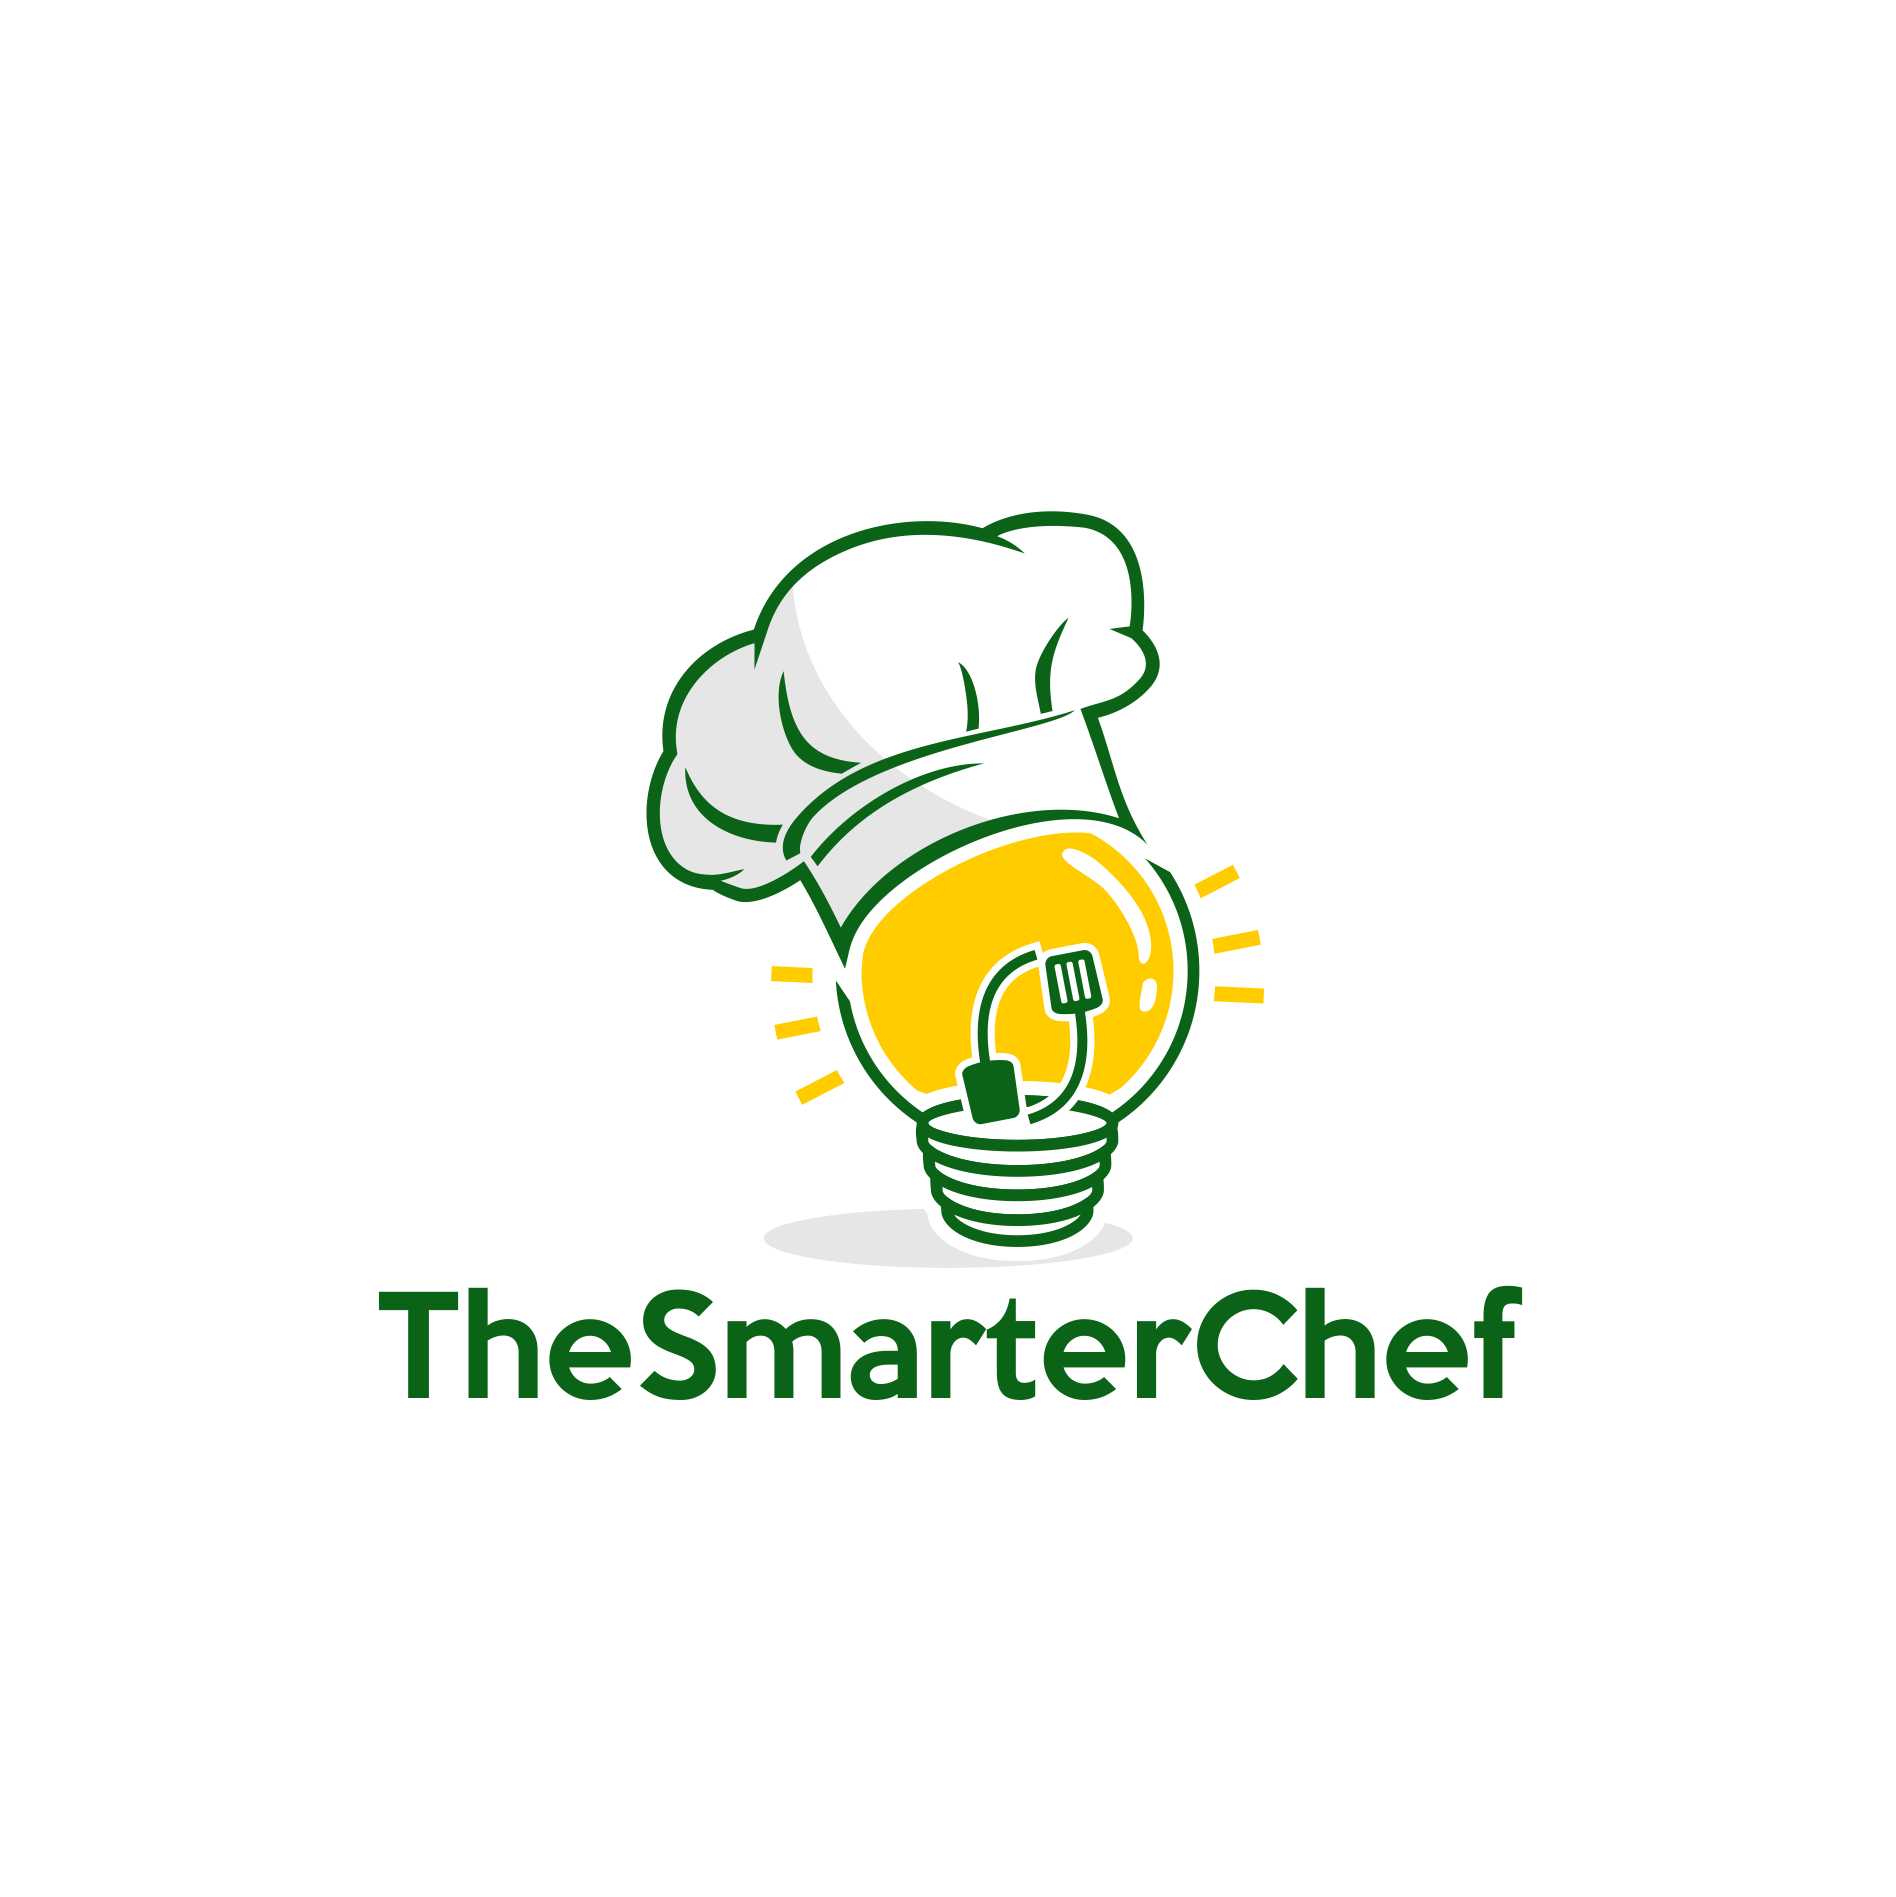 Logo Needed for Website in Healthy and Delicious Foods Niche